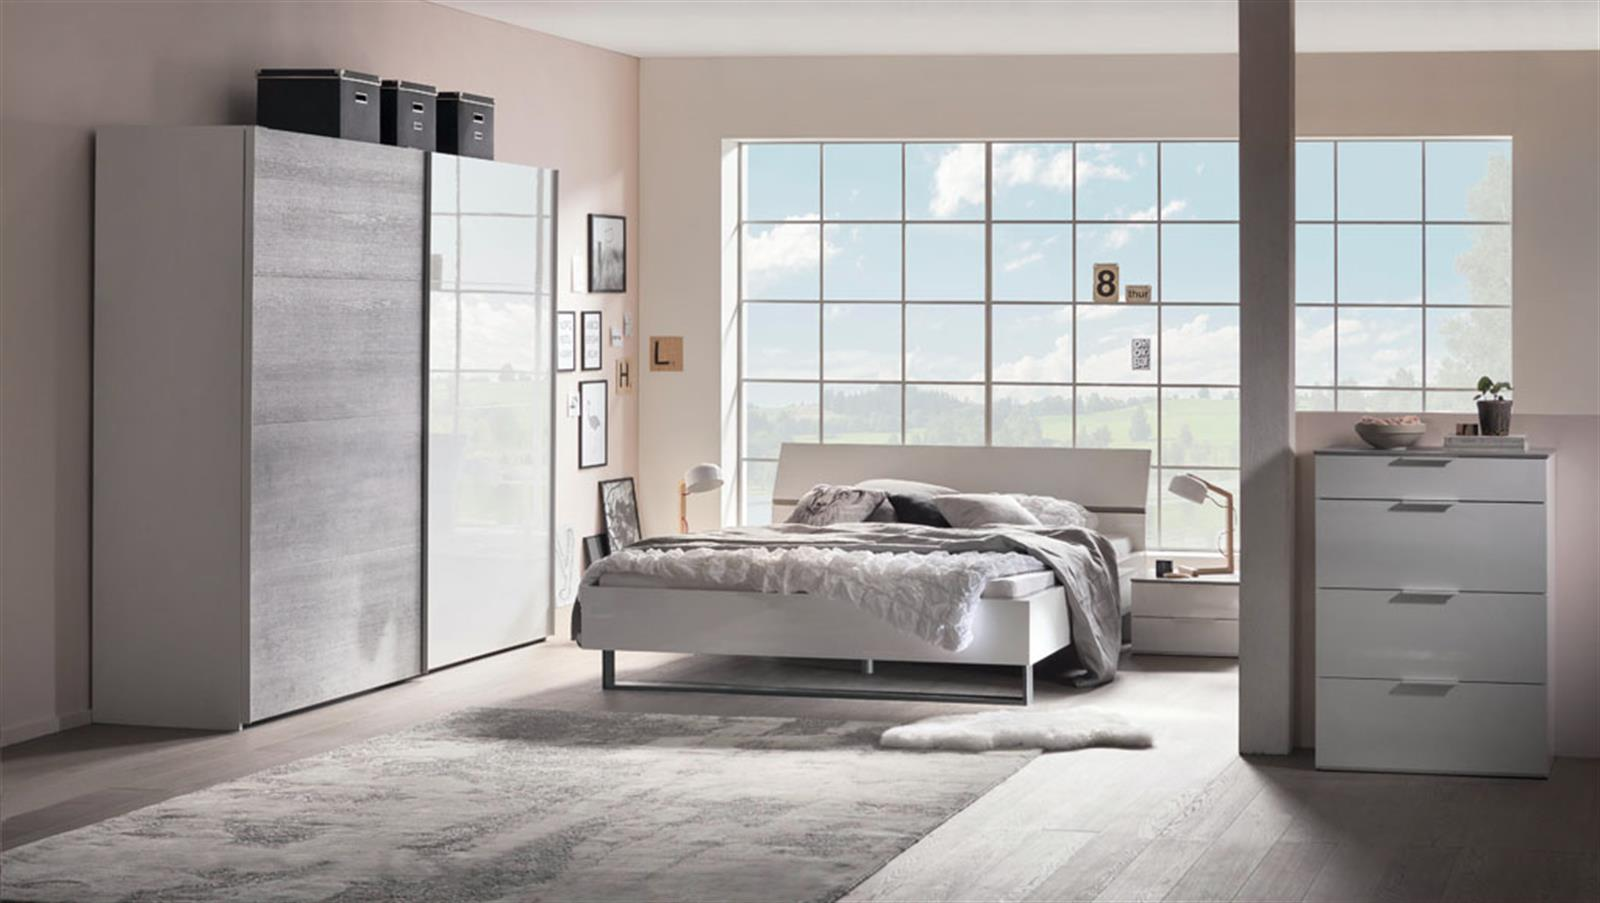 conforama fully equipped kitchens furniture editus. Black Bedroom Furniture Sets. Home Design Ideas